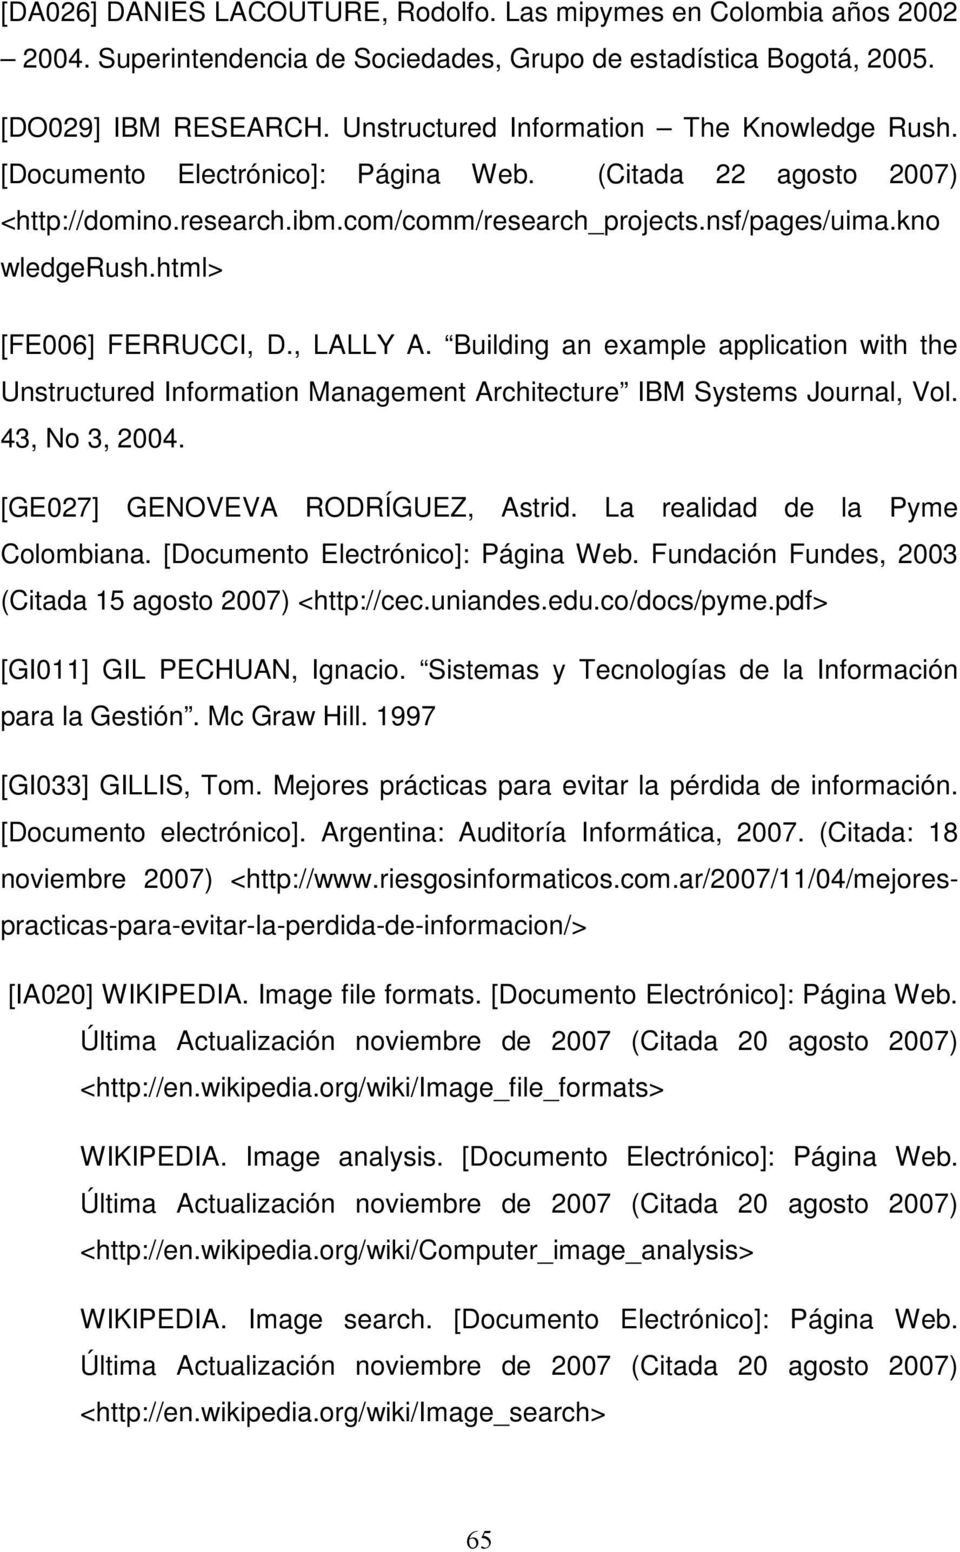 html> [FE006] FERRUCCI, D., LALLY A. Building an example application with the Unstructured Information Management Architecture IBM Systems Journal, Vol. 43, No 3, 2004.